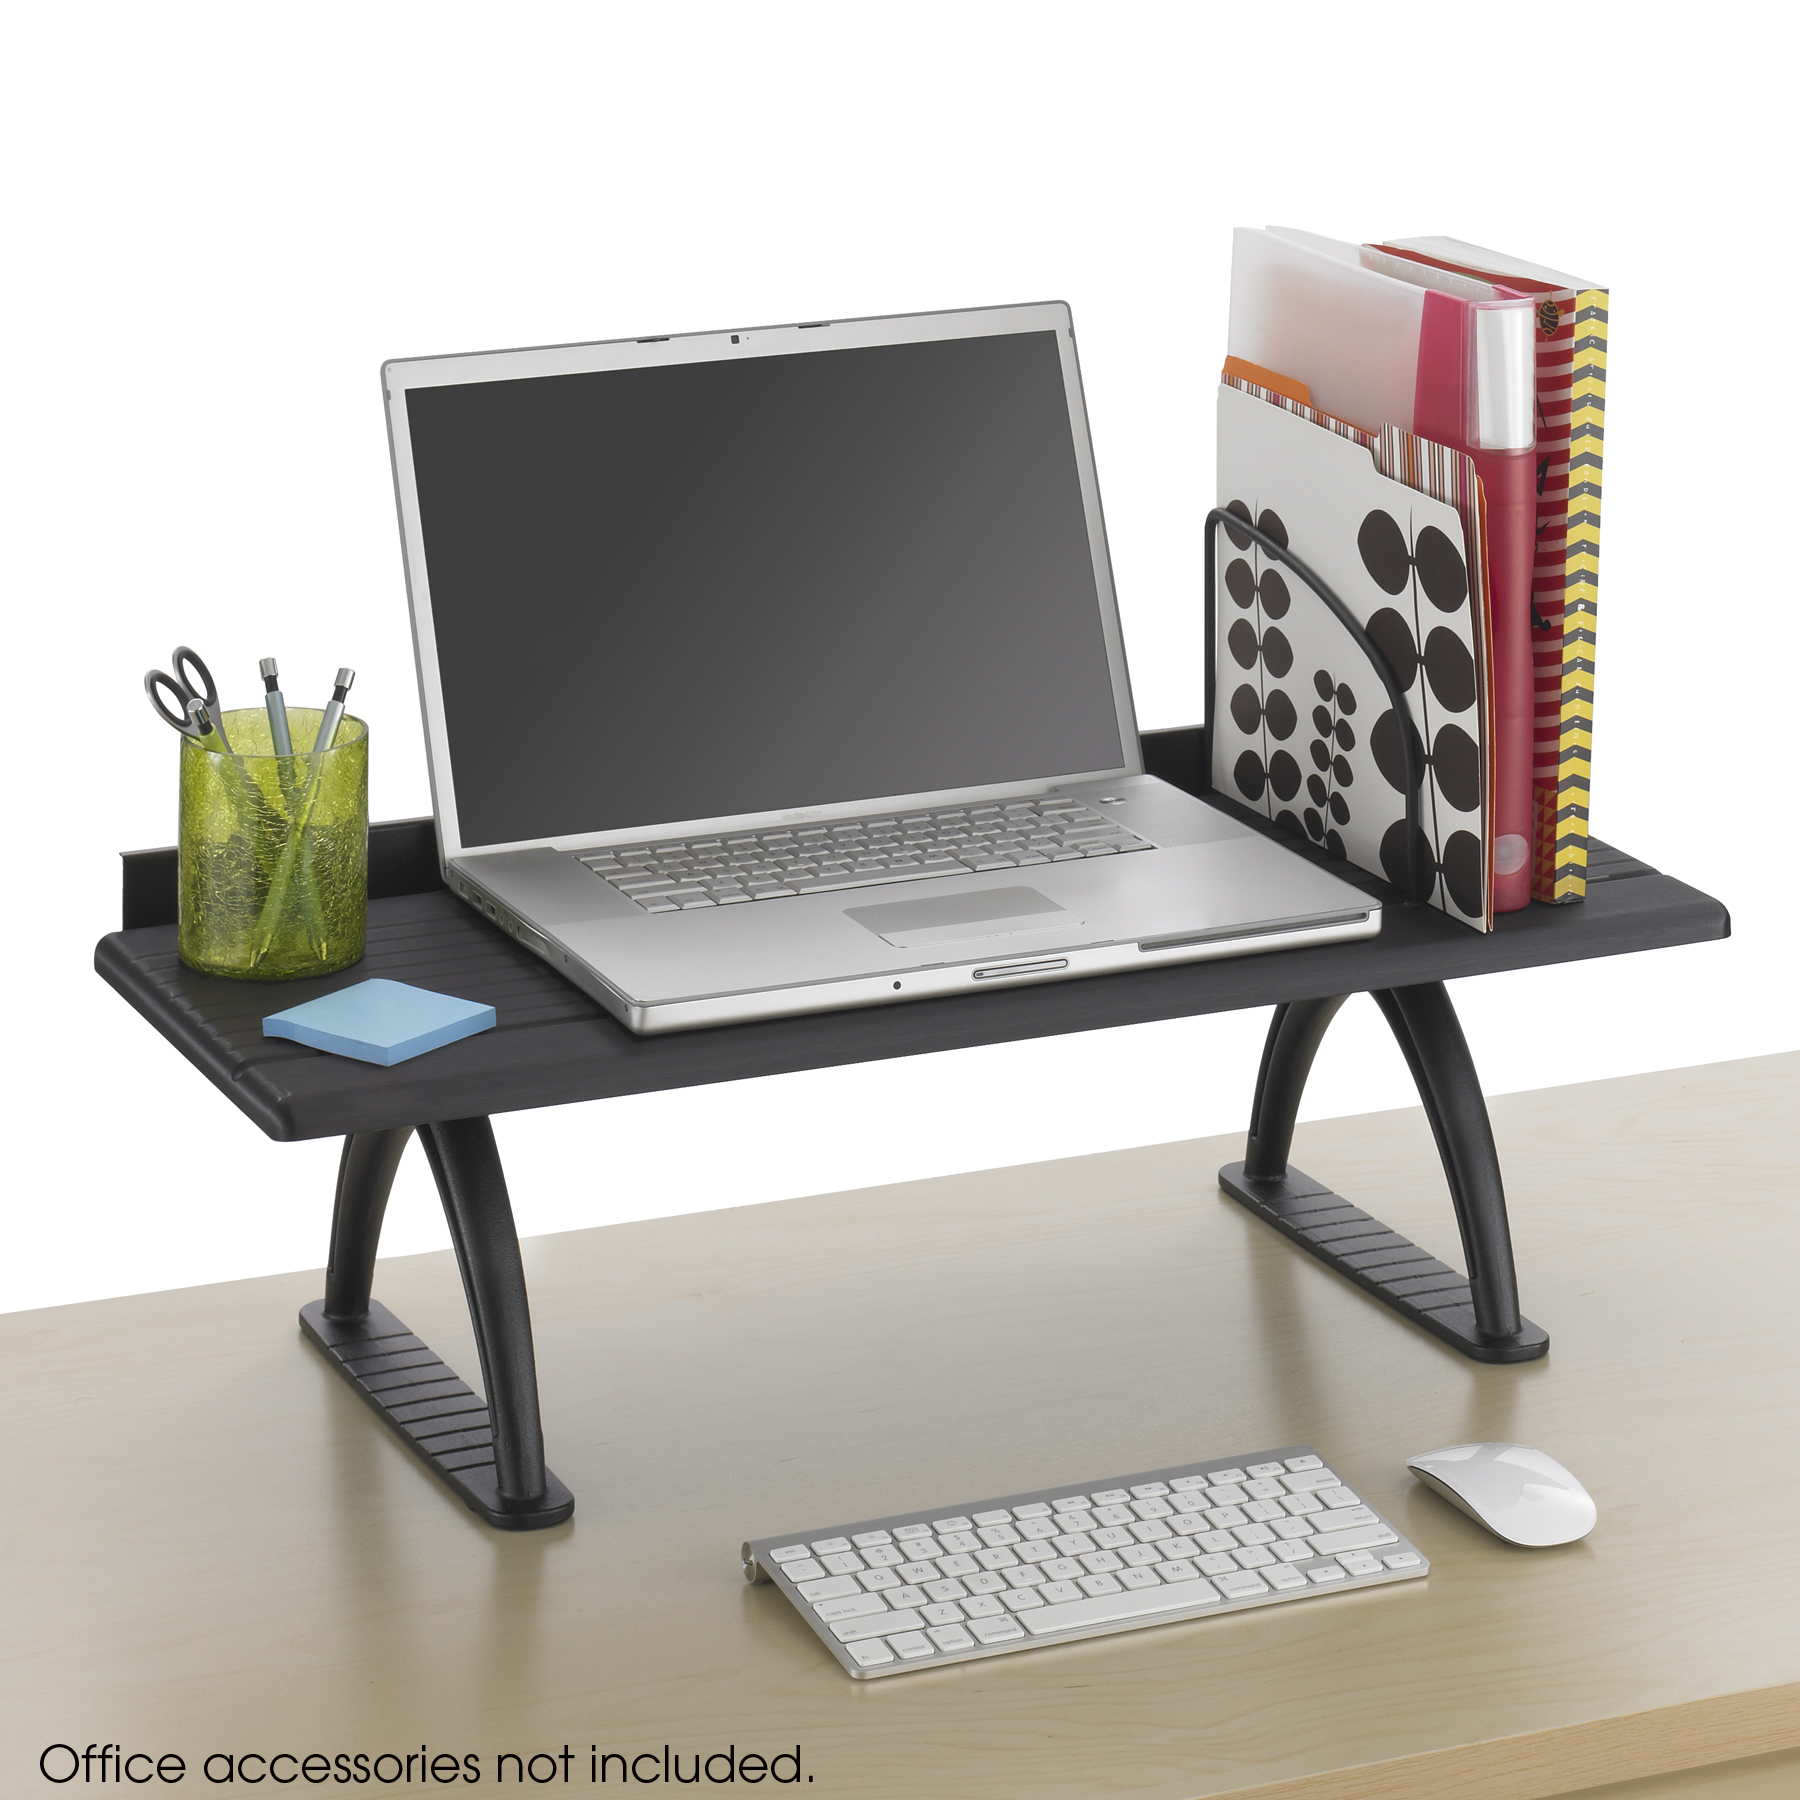 Safco 3602BL Home Office BLACK Wood Desktop Organizers 30 In Desk Riser  12 In Deep Shelf With Shelf Divider 100 Lb Weight Capacity   Walmart.com